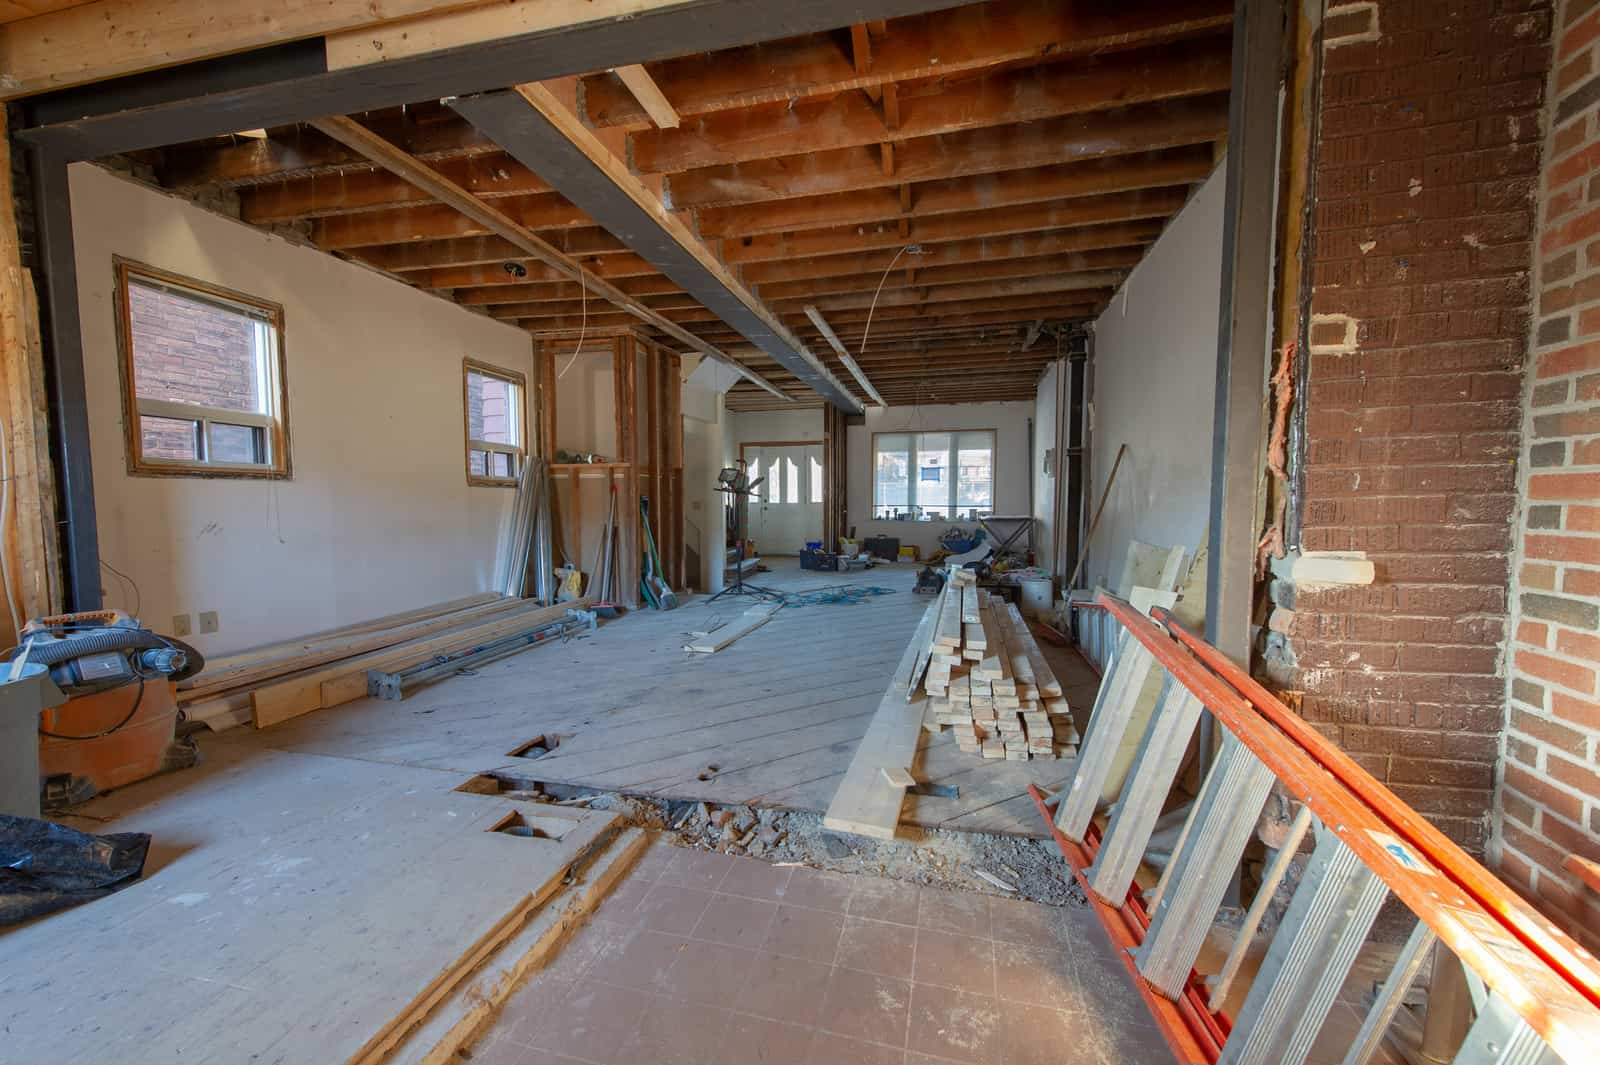 Renovations at a residential house